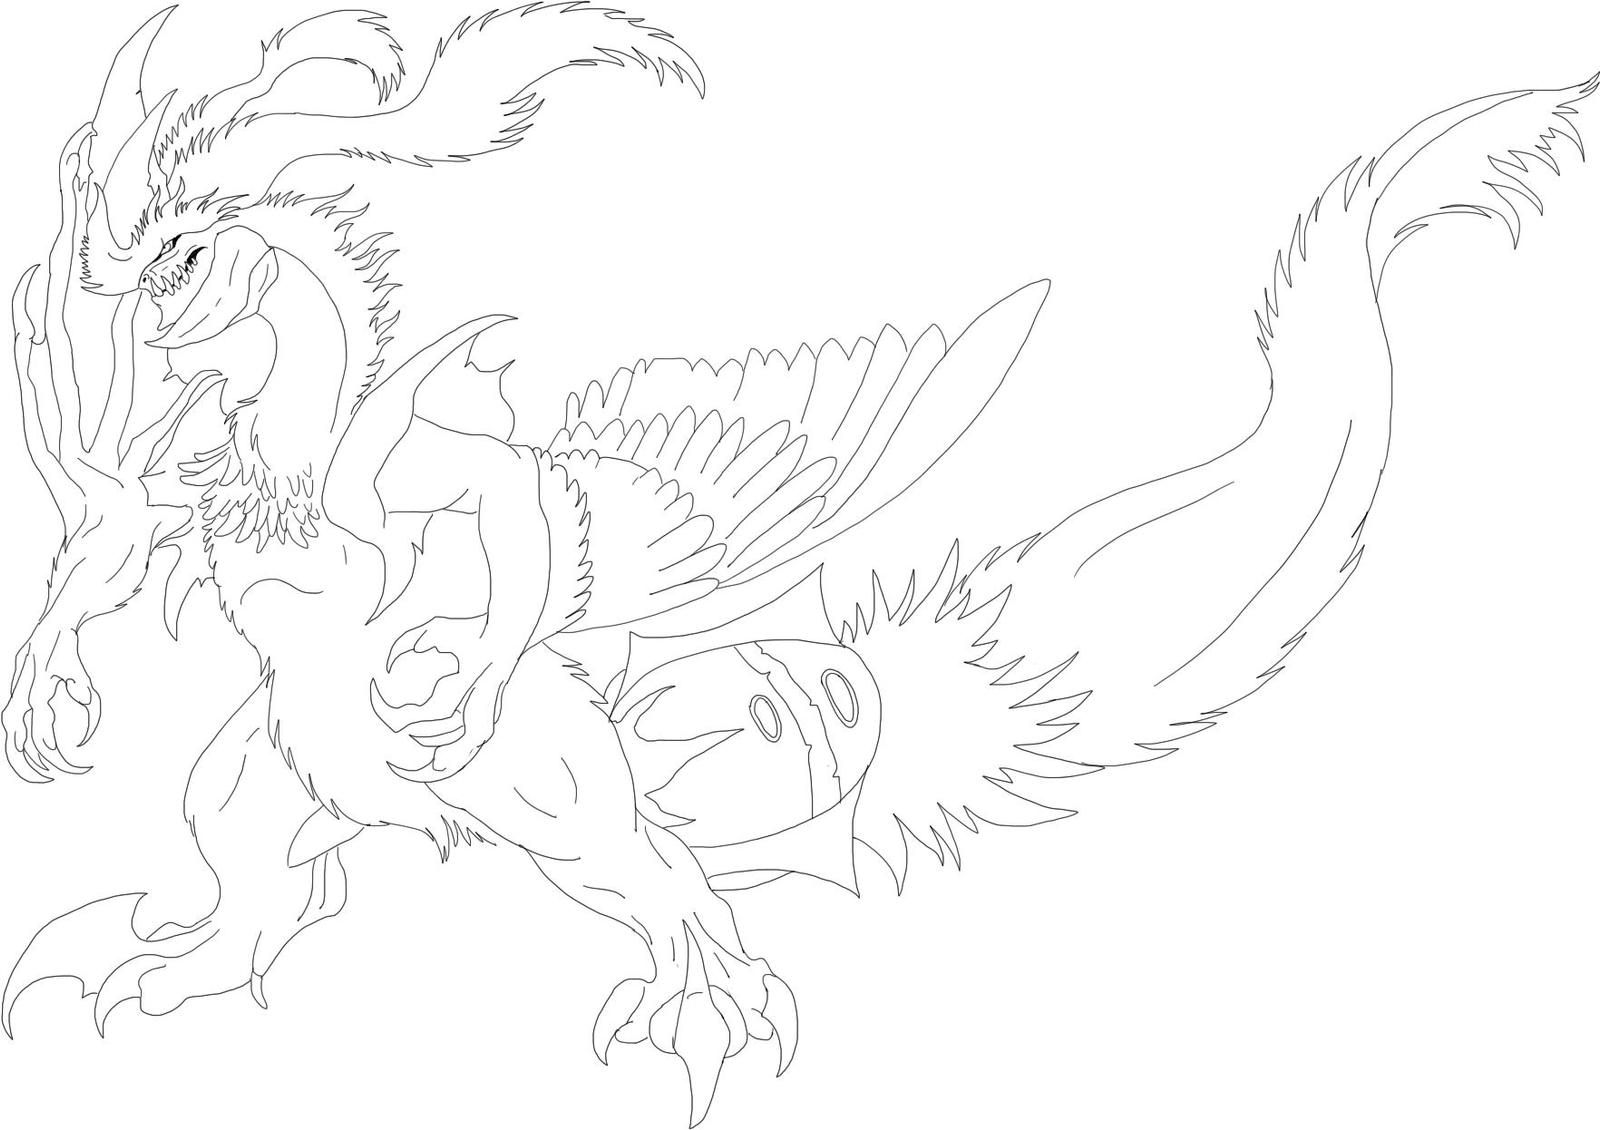 Another White Kyurem Line Art By KFCemployee